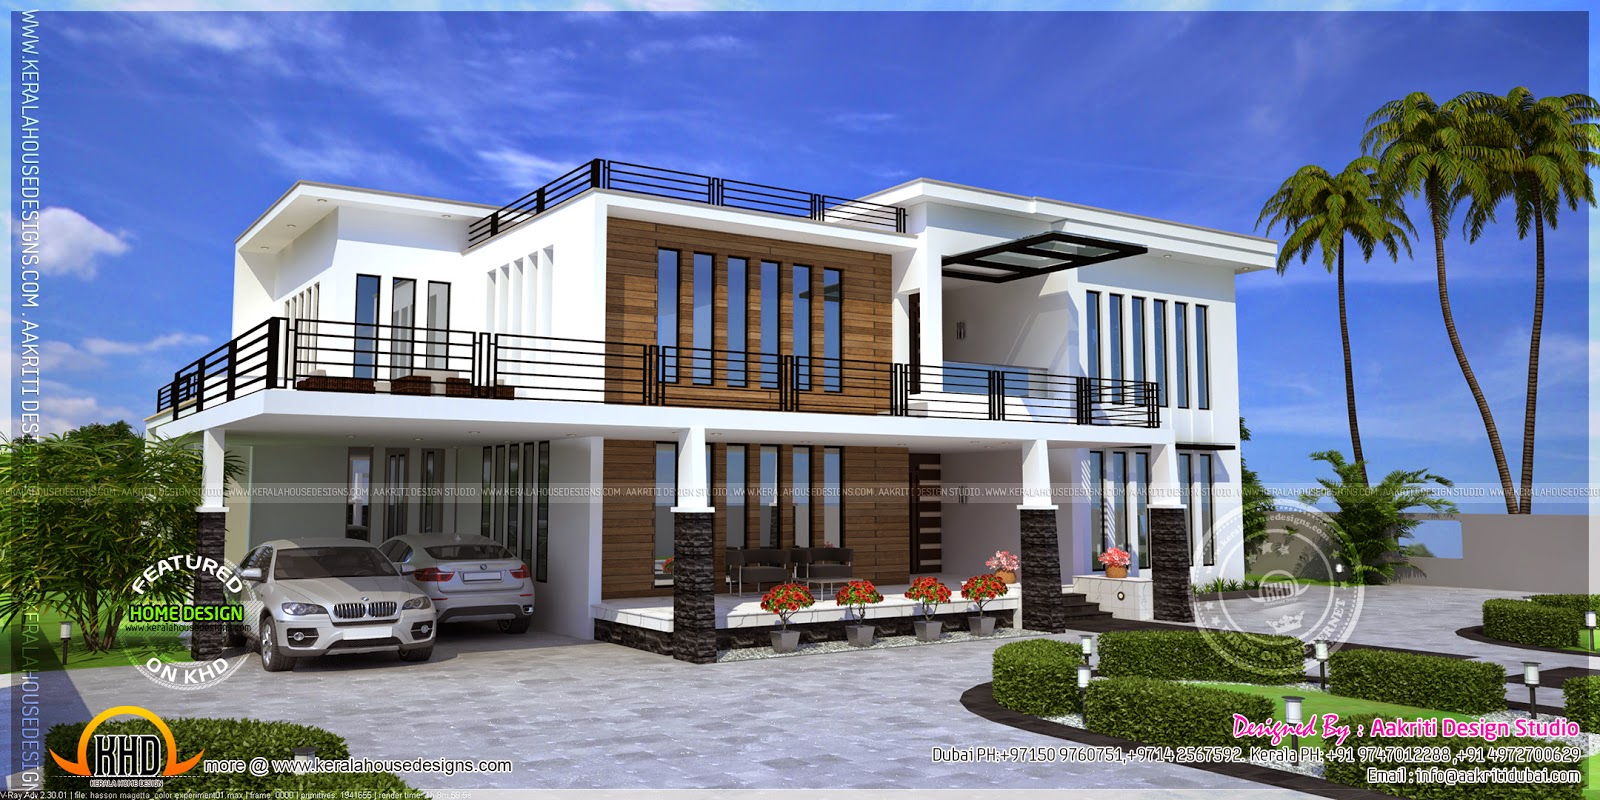 Contemporary house view kerala home design and floor plans for Modern house view